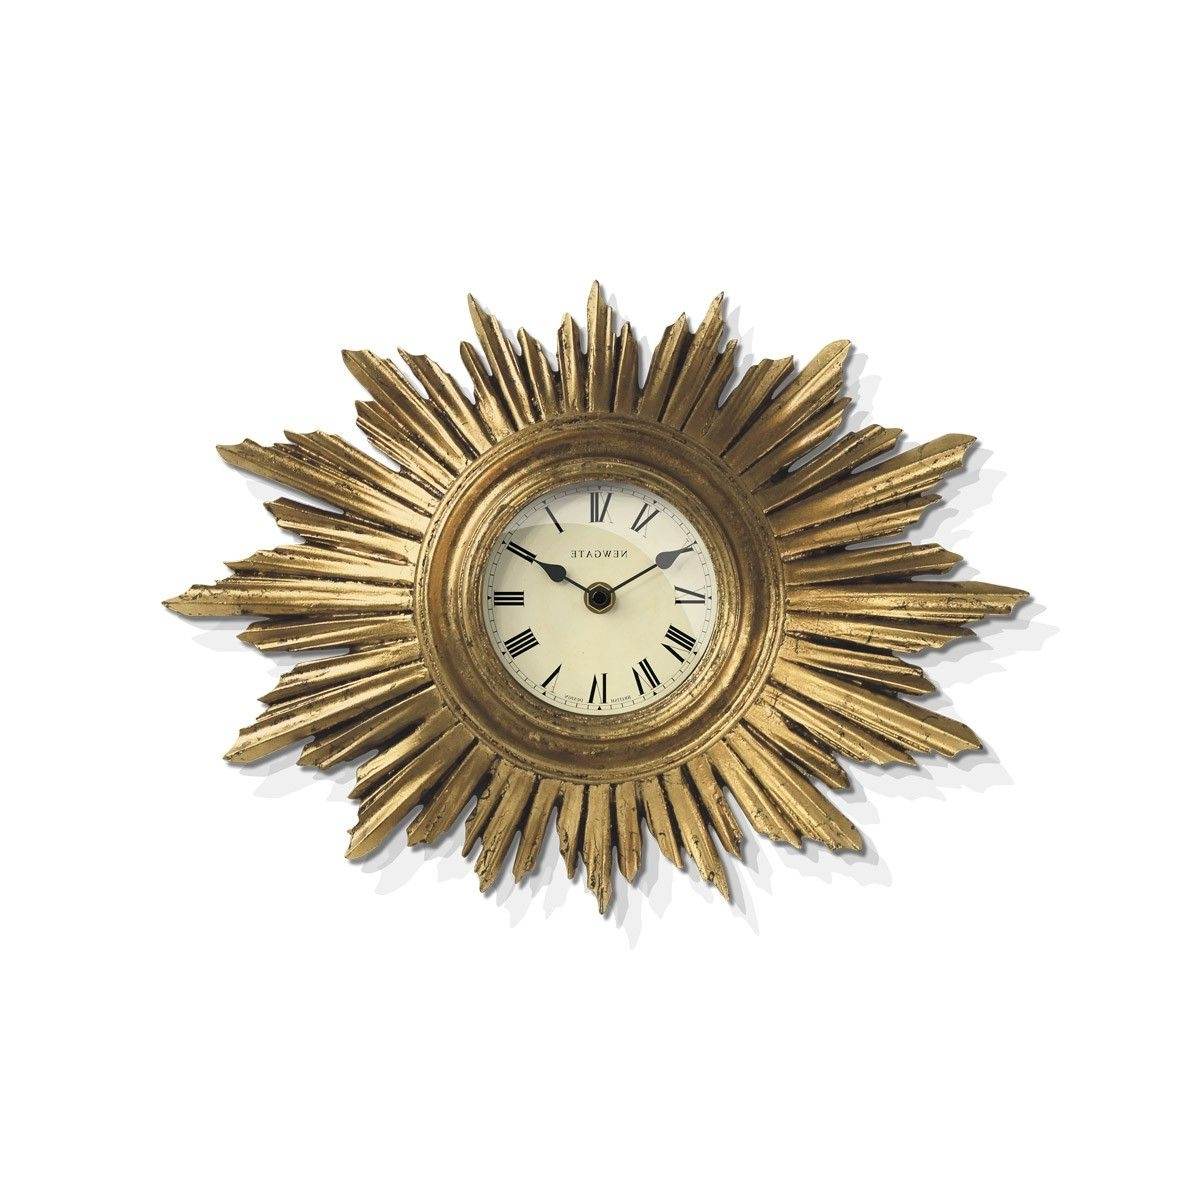 2018 The Sunburst Wall Clock In Vintage Goldnewgate Clocks An Art Throughout Art Deco Wall Clock (View 8 of 20)